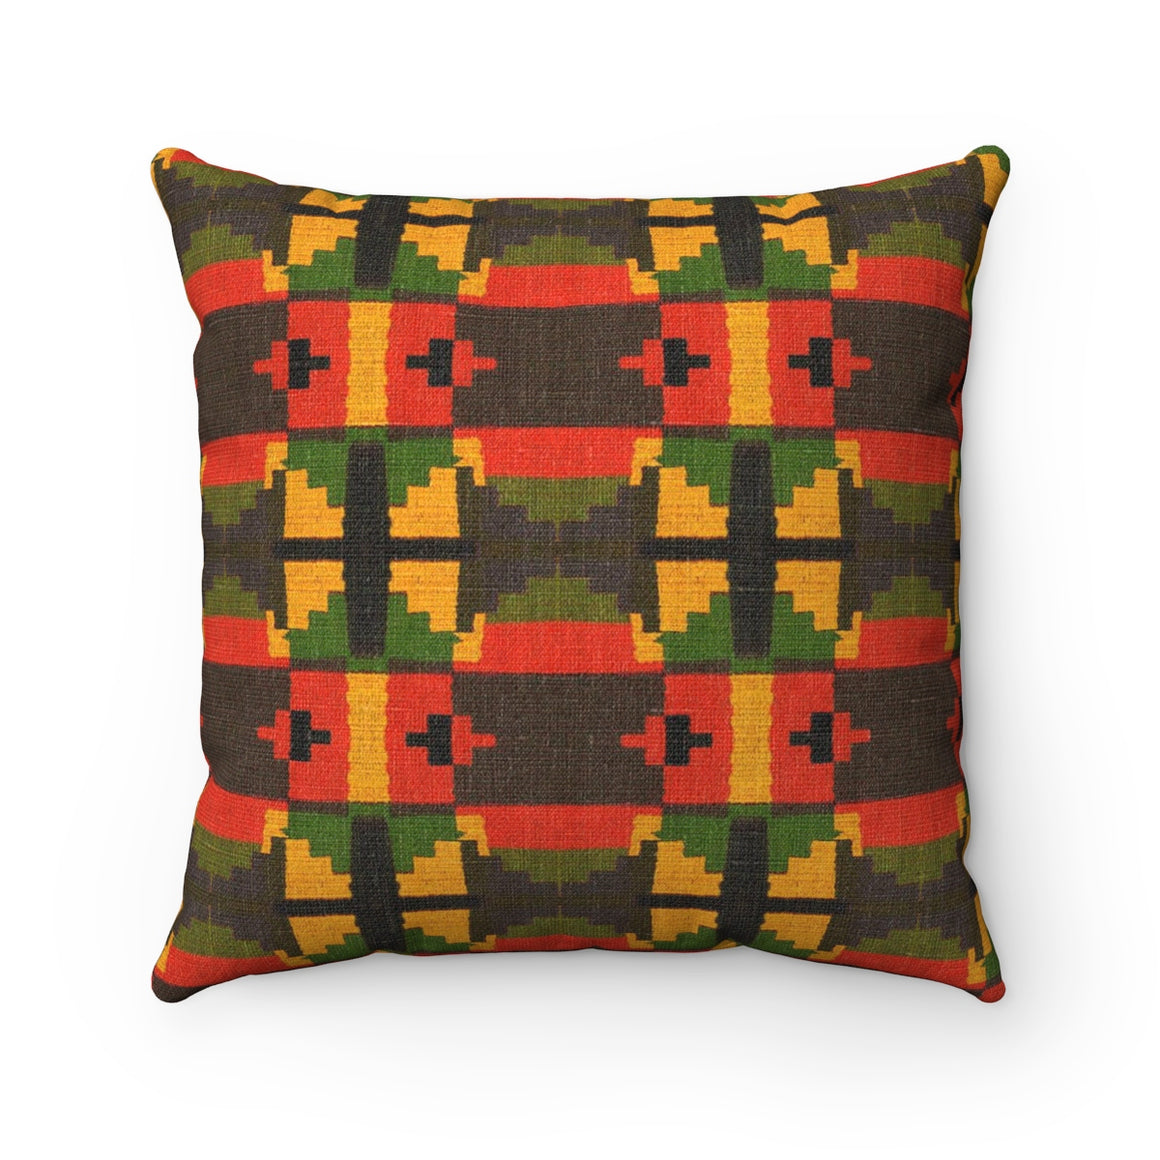 Kente Print Spun Polyester Square Pillow - Zabba Designs African Clothing Store